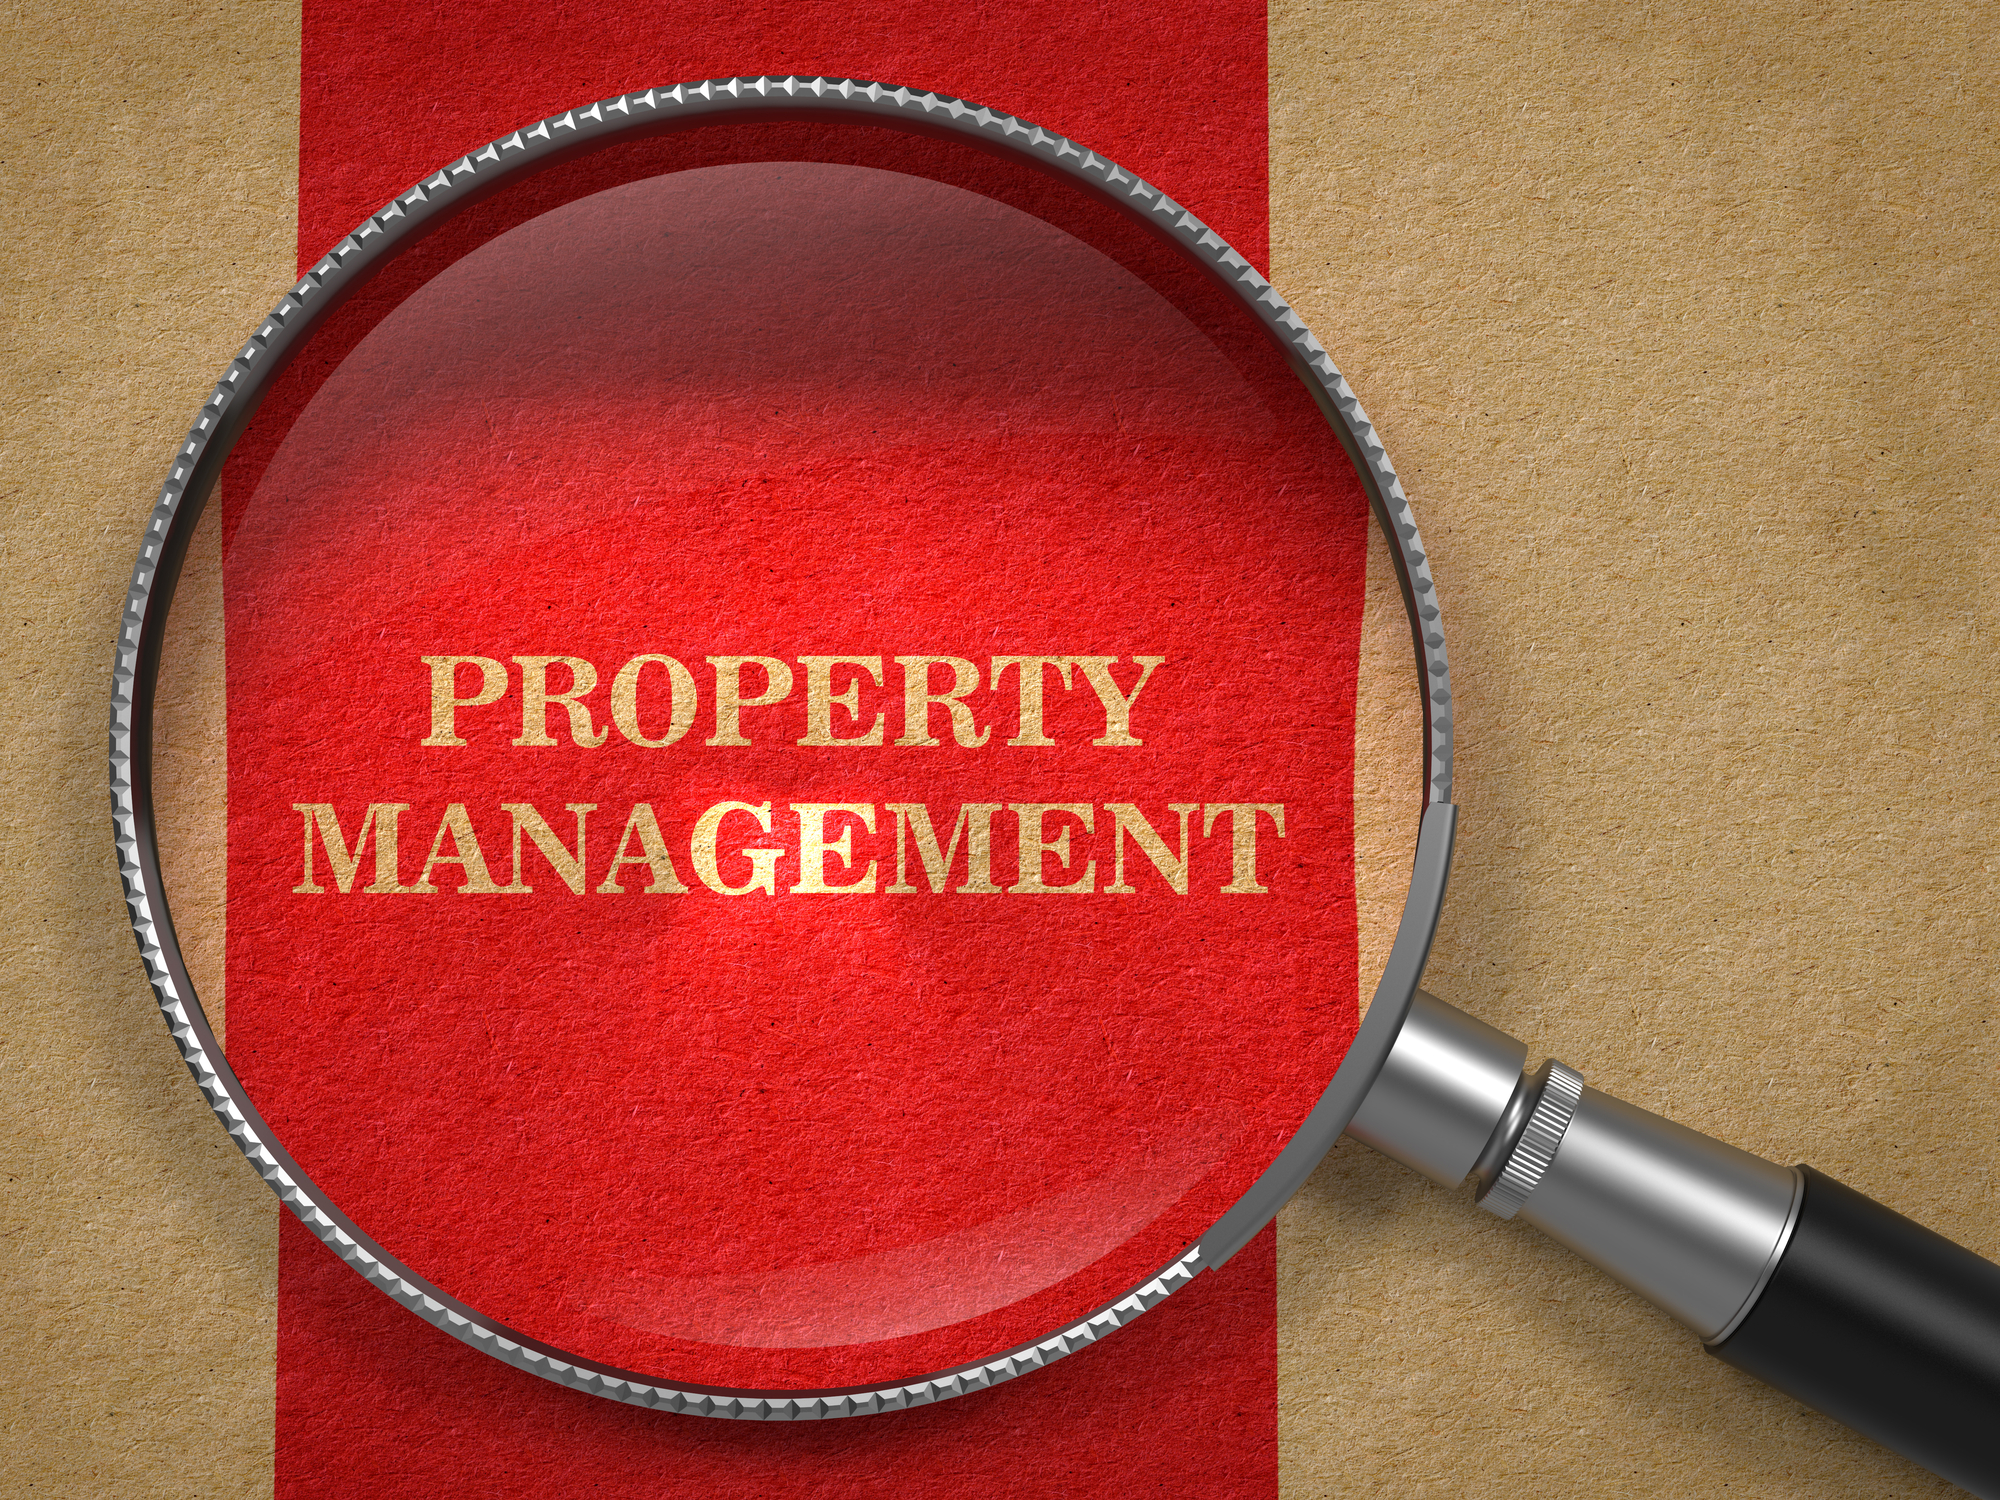 Property Management. Magnifying Glass on Old Paper